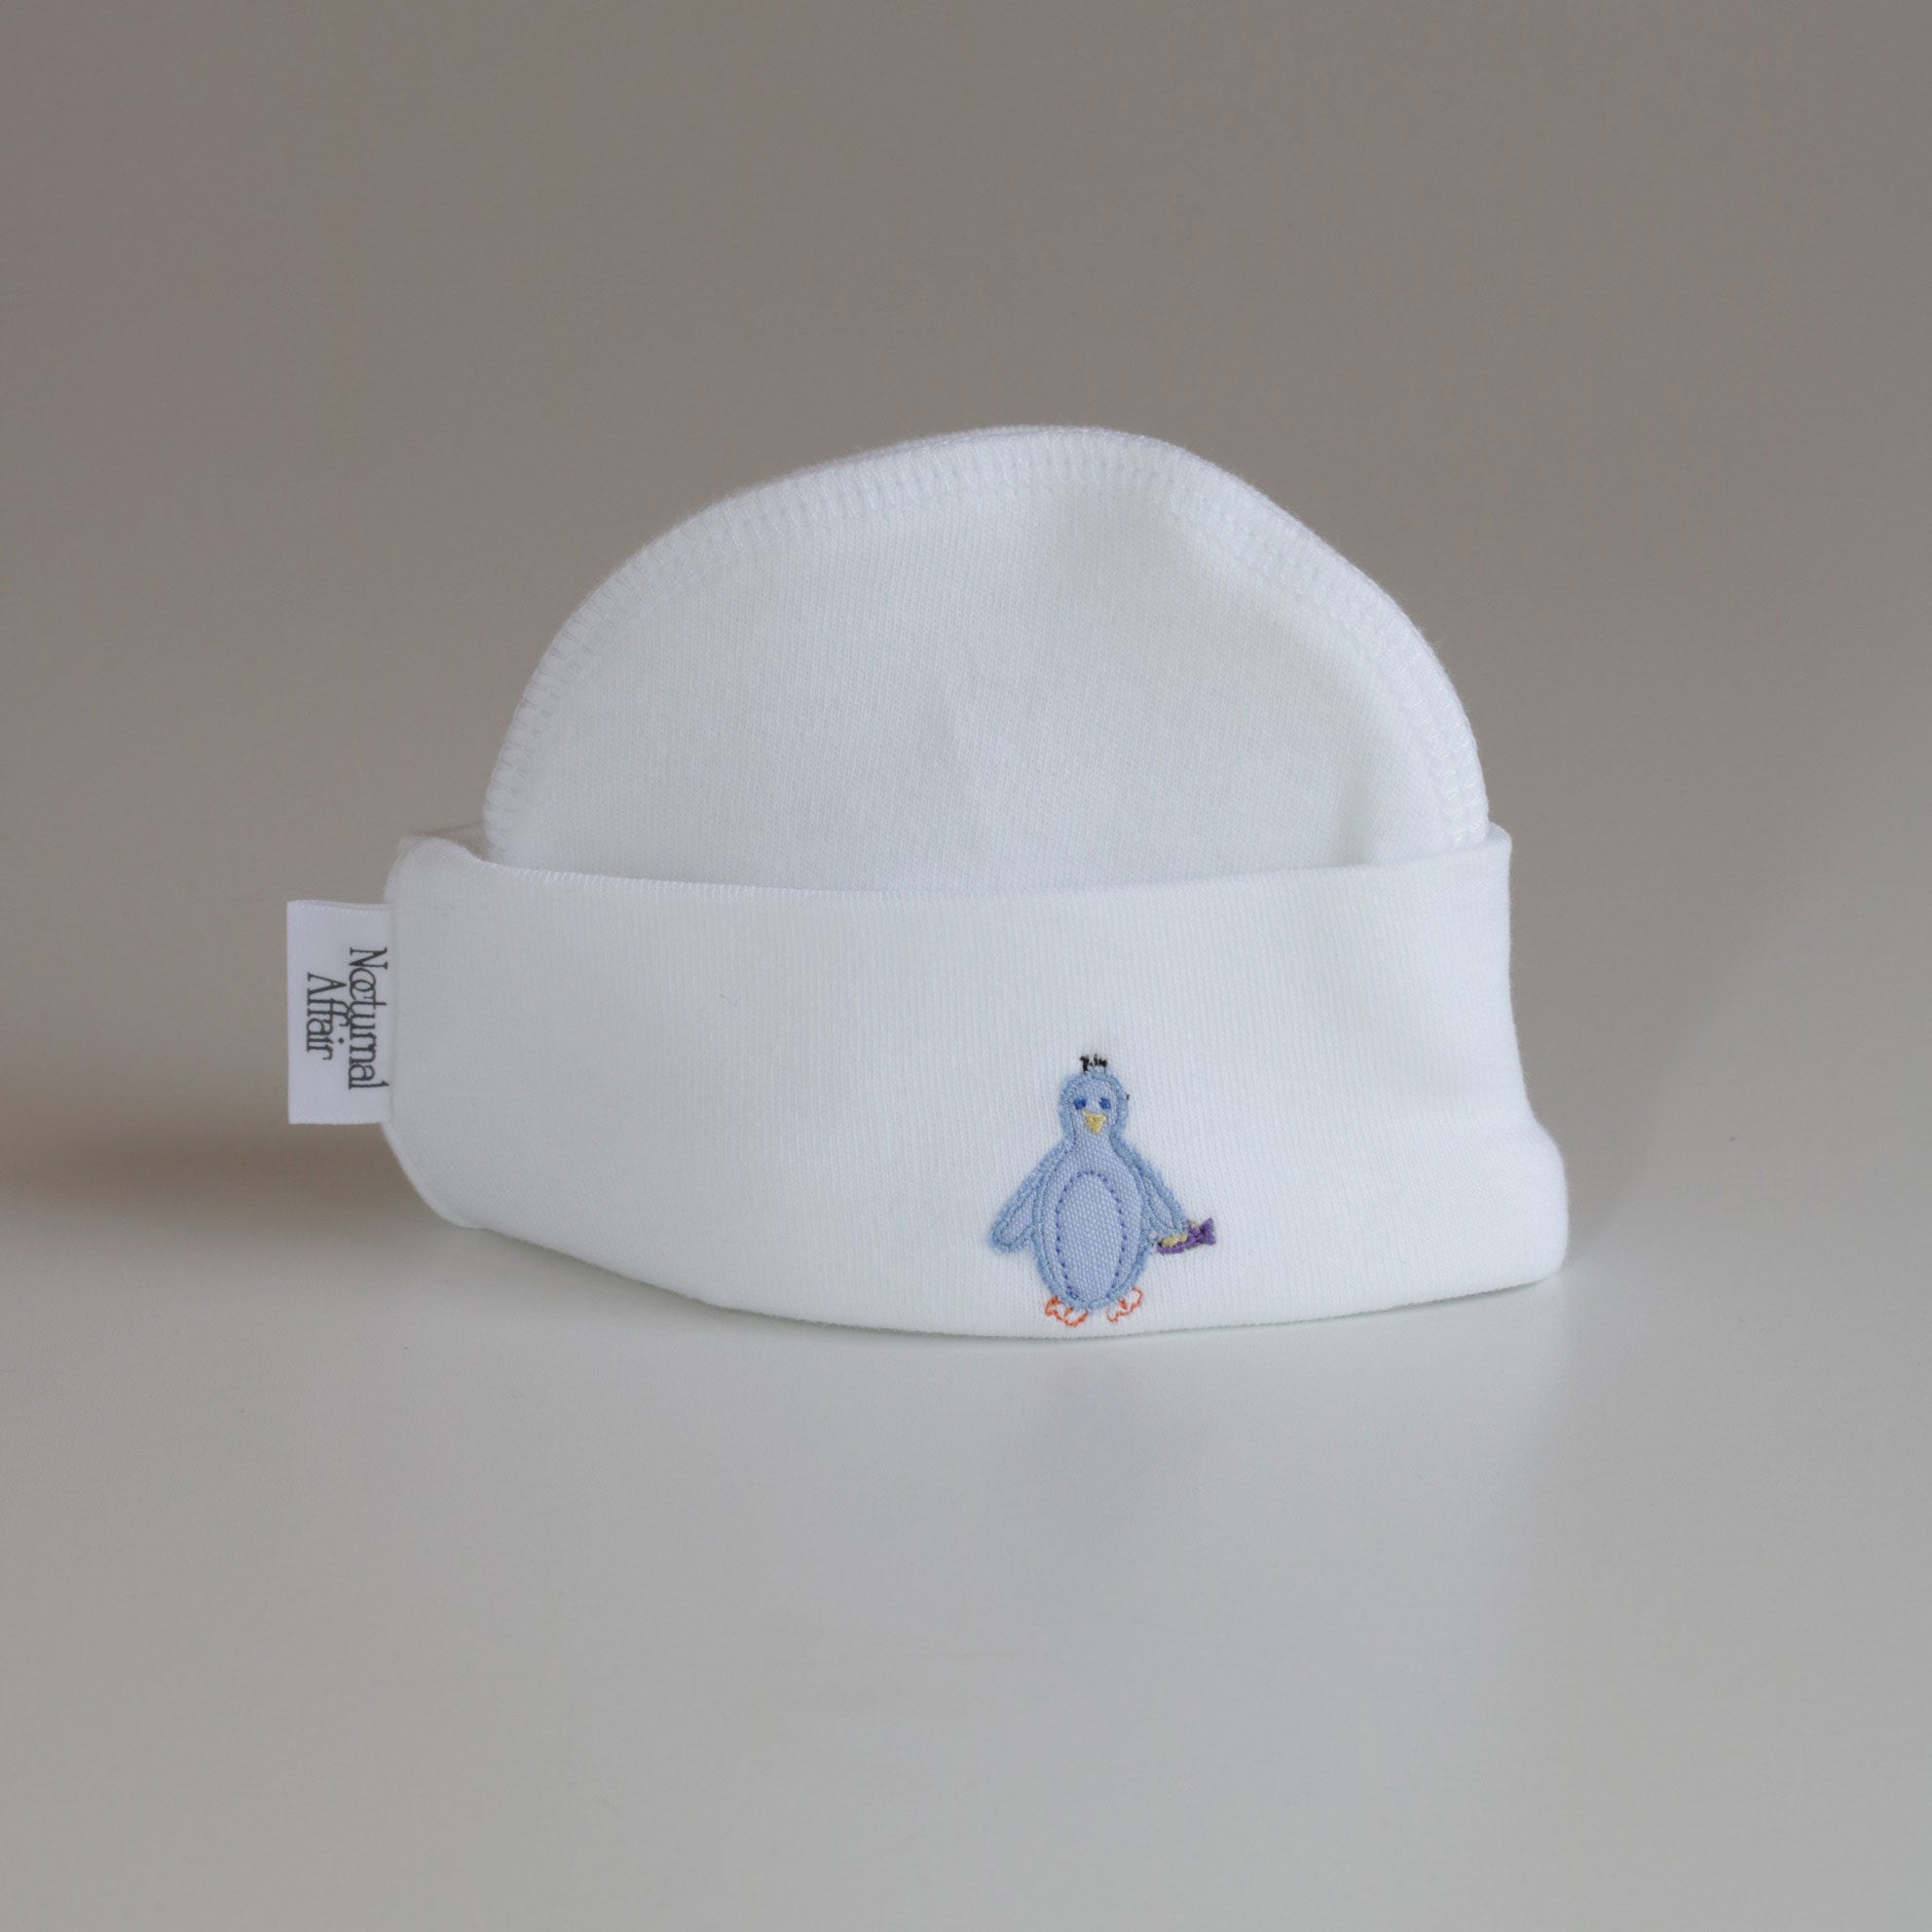 Nocturnal Affair Stitched Beanie - Penguin